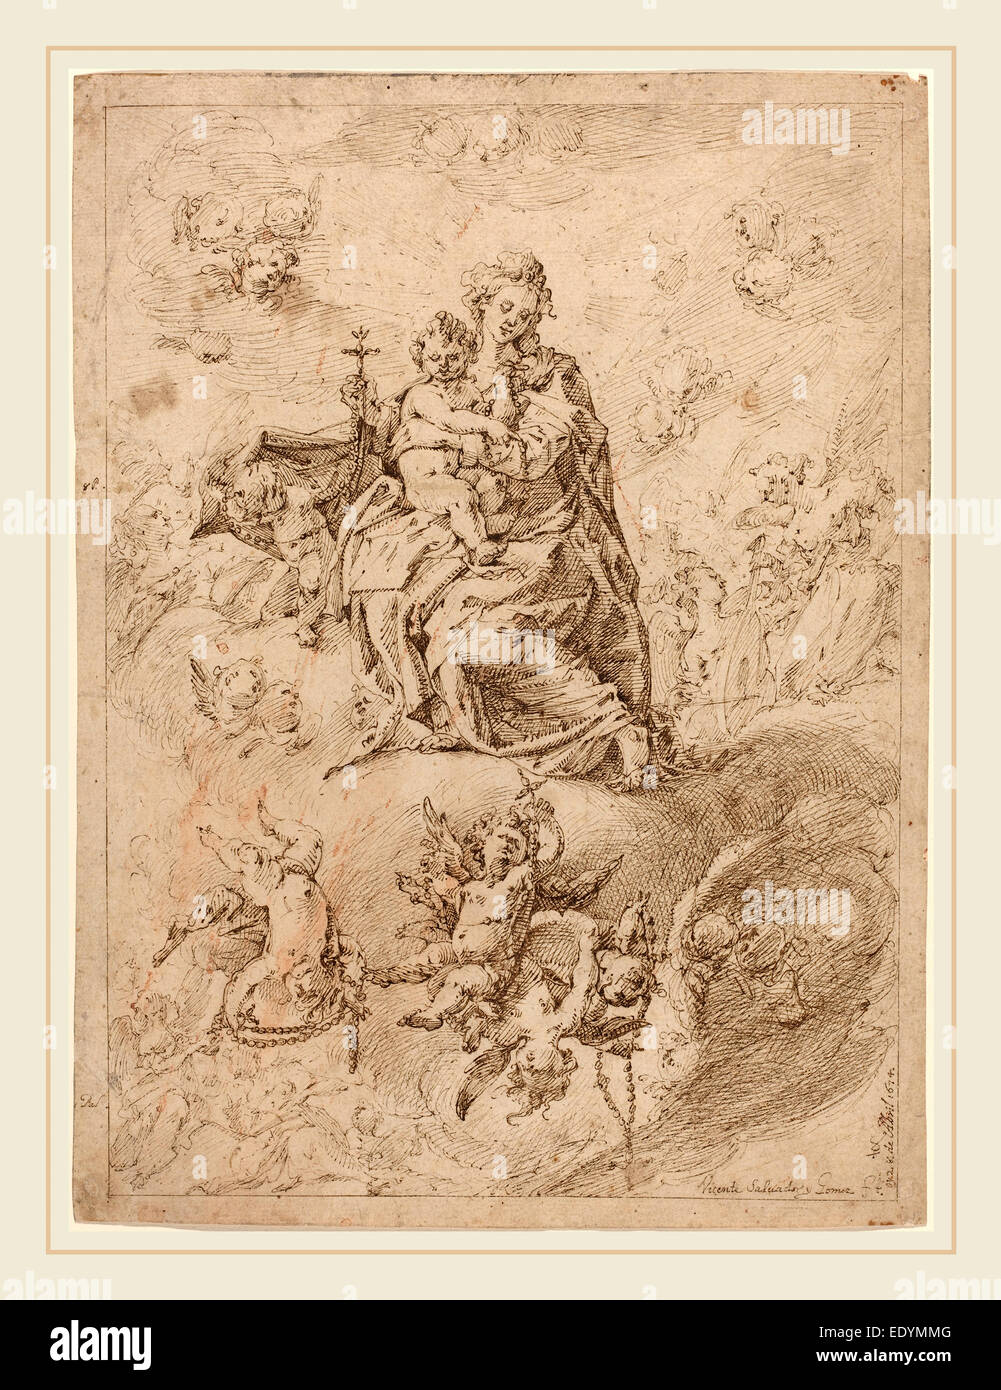 Vicente Salvador Gómez (Spanish, 1637-c. 1680), The Madonna of the Rosary, 1674, pen and brown ink on laid - Stock Image